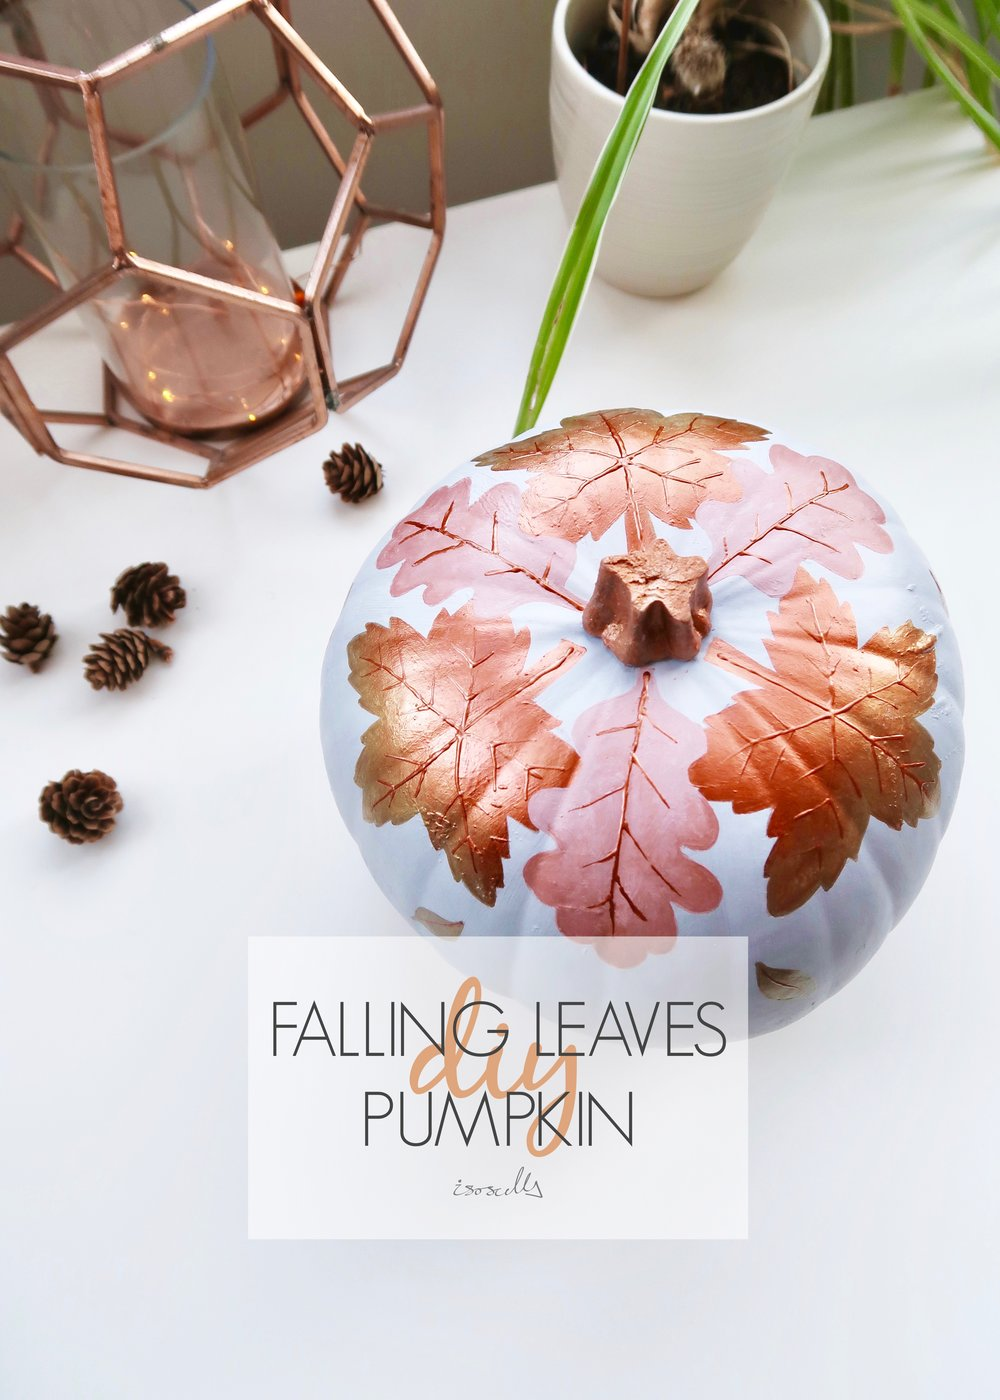 Falling Leaves No-Carve Pumpkin by Isoscella